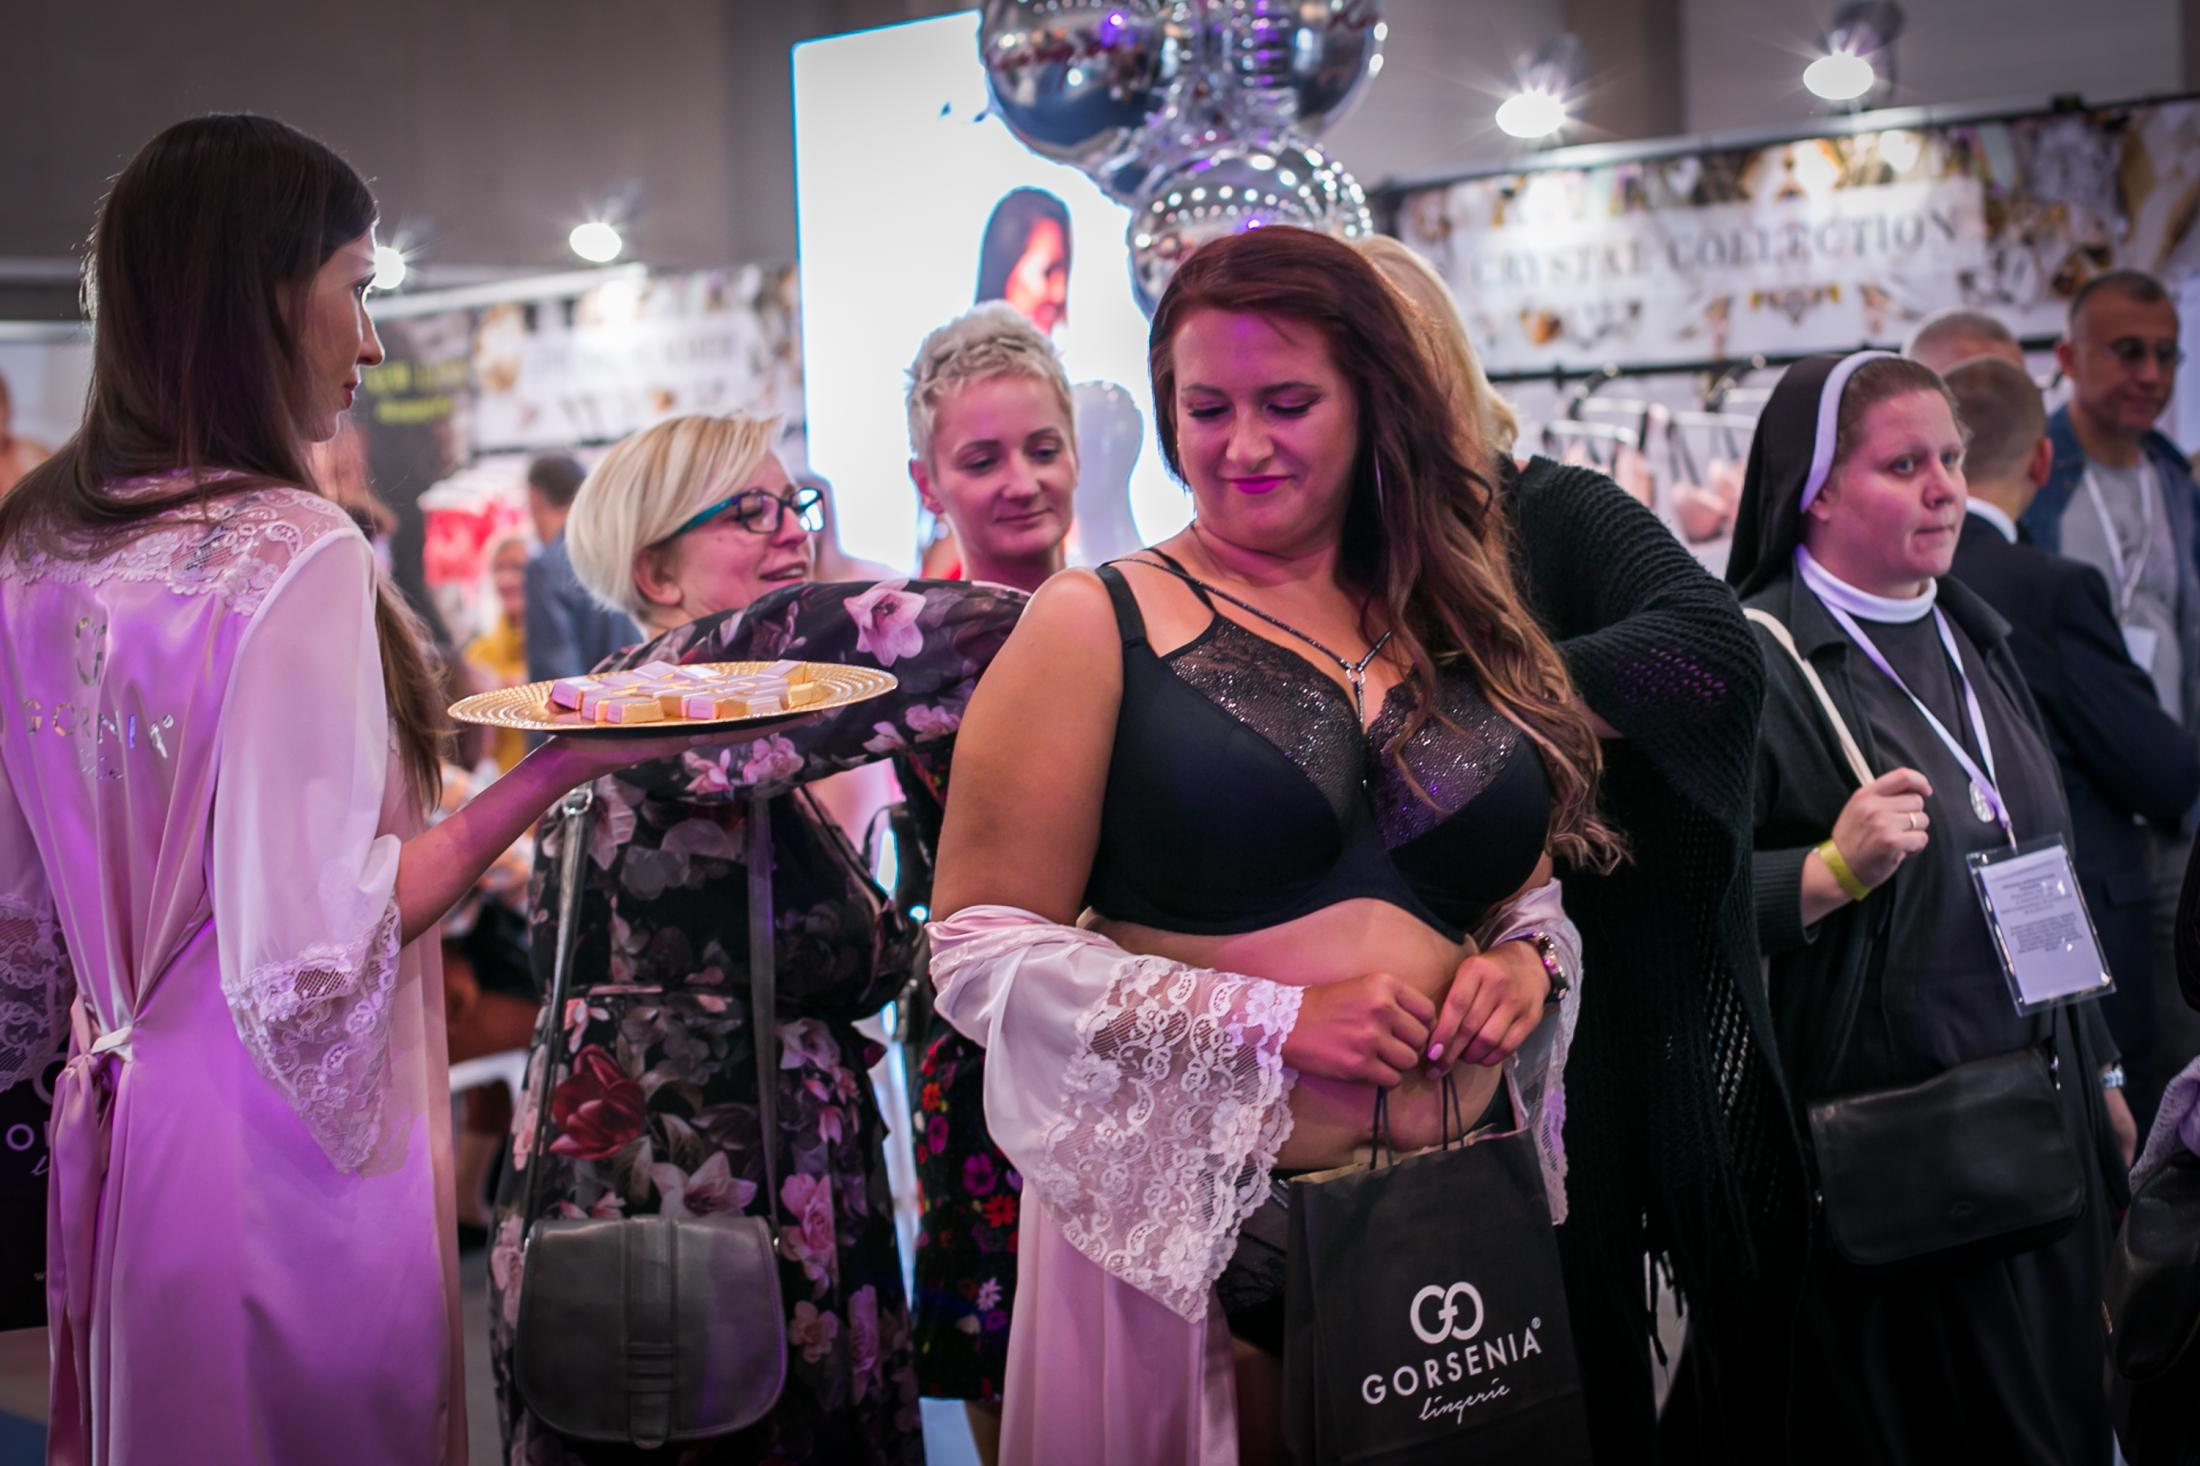 A model shows one style at the trade show